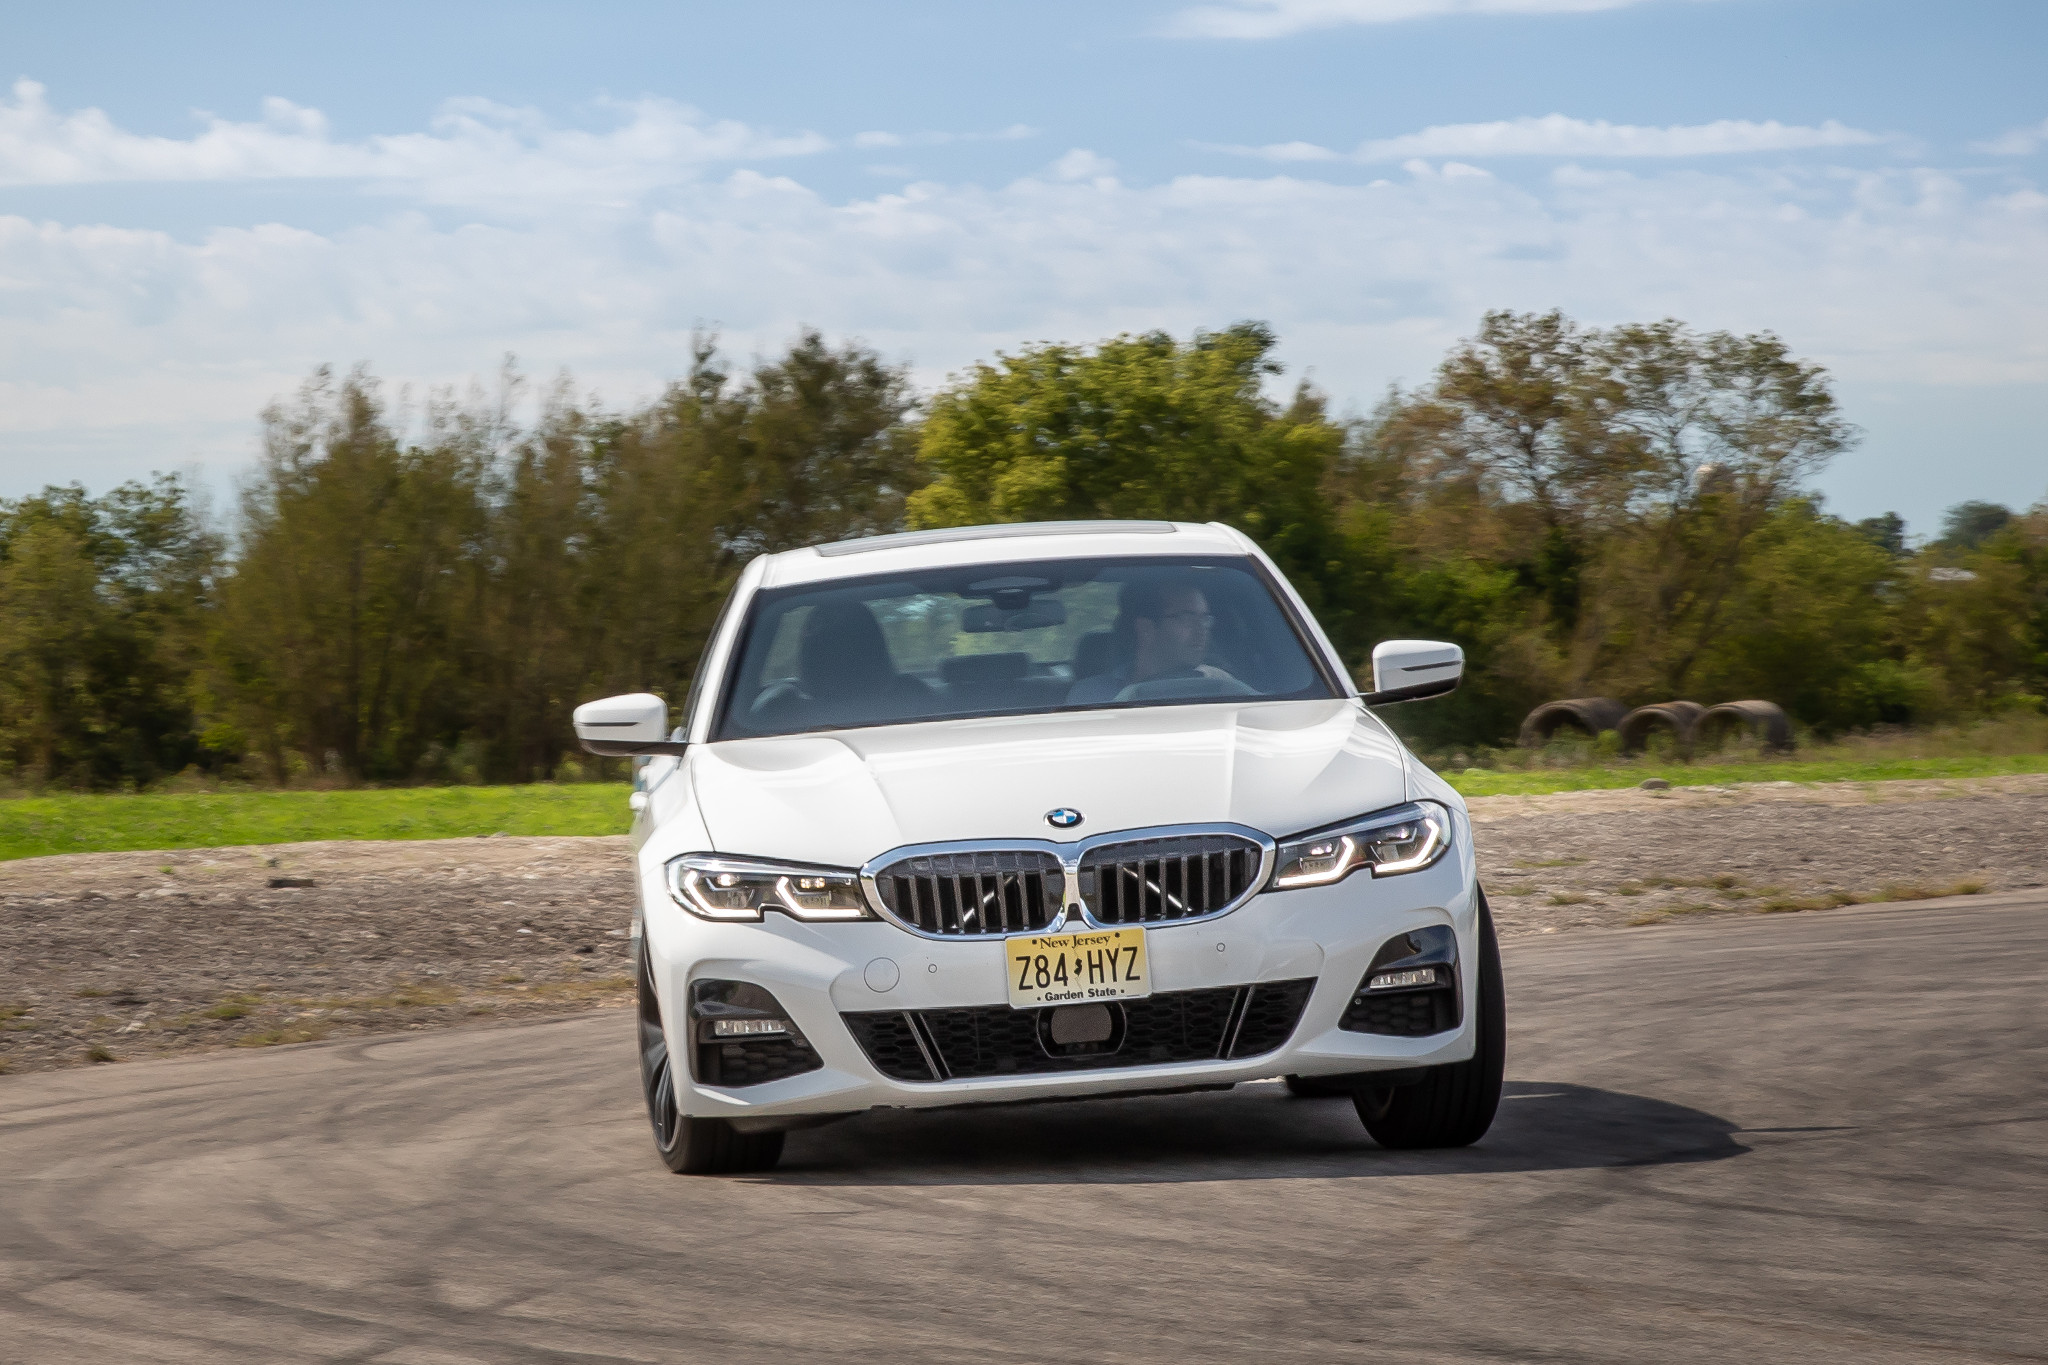 2019 BMW 3 Series: 8 Things We Like and 5 Things We Don't